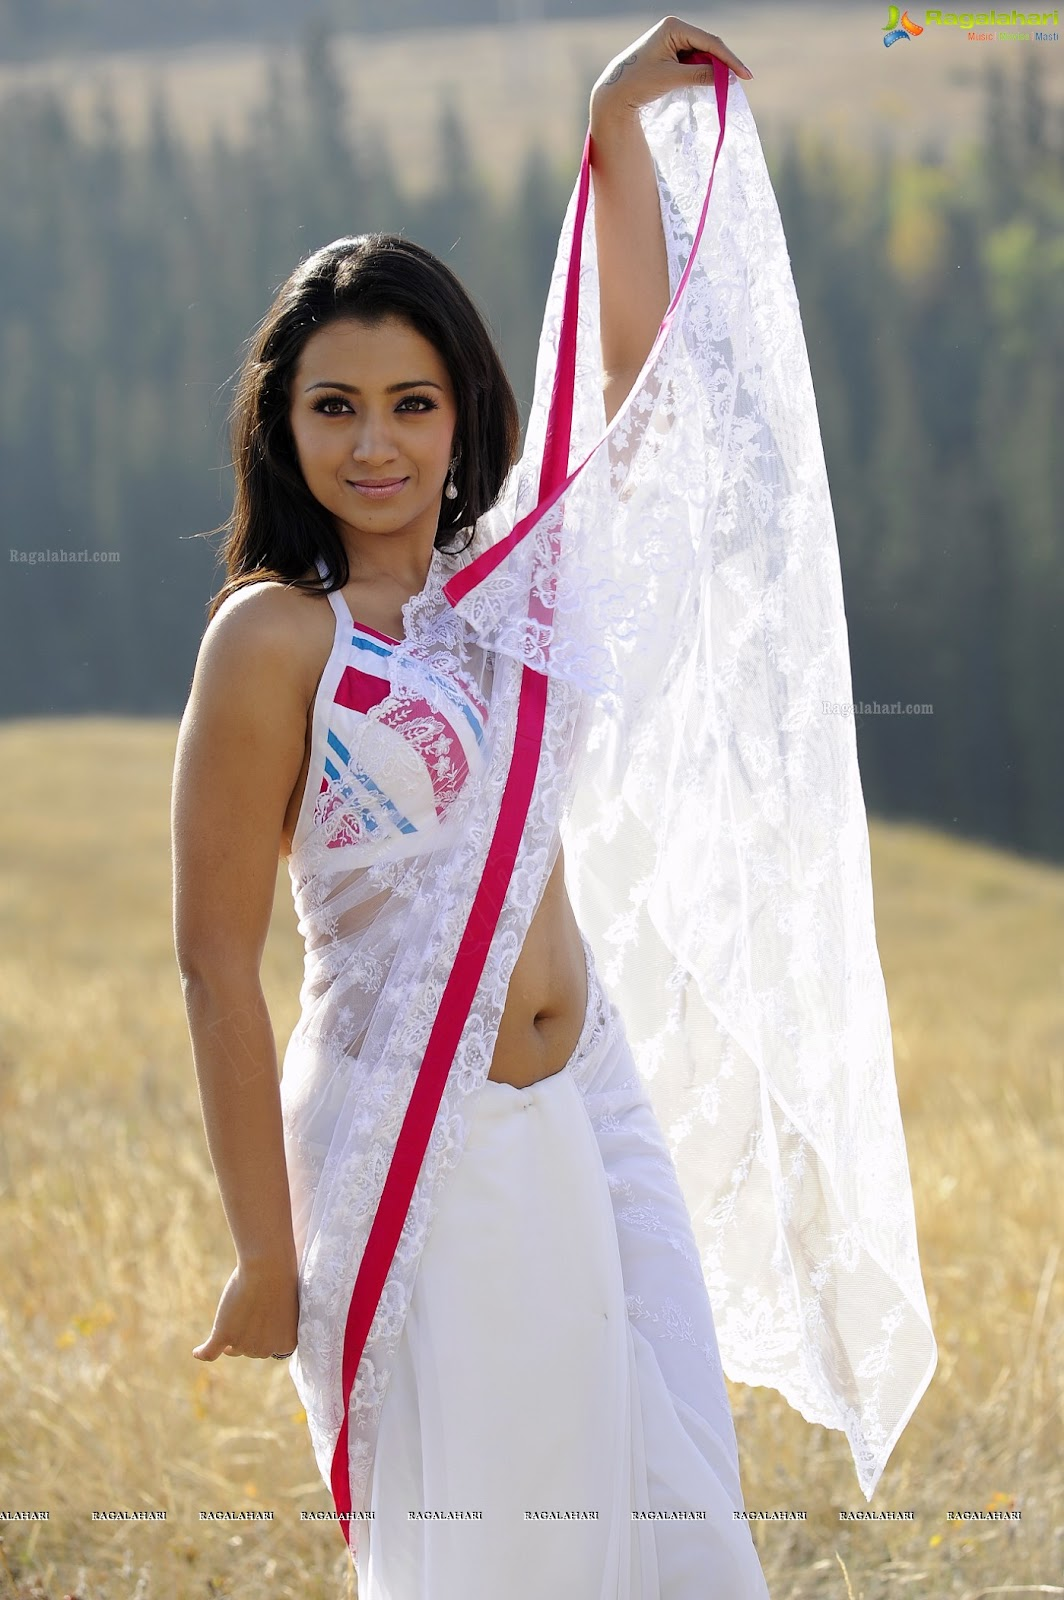 Trisha in hot Transparent Backless Saree1 -  Trisha Hot Pics In Transparent Backless Saree